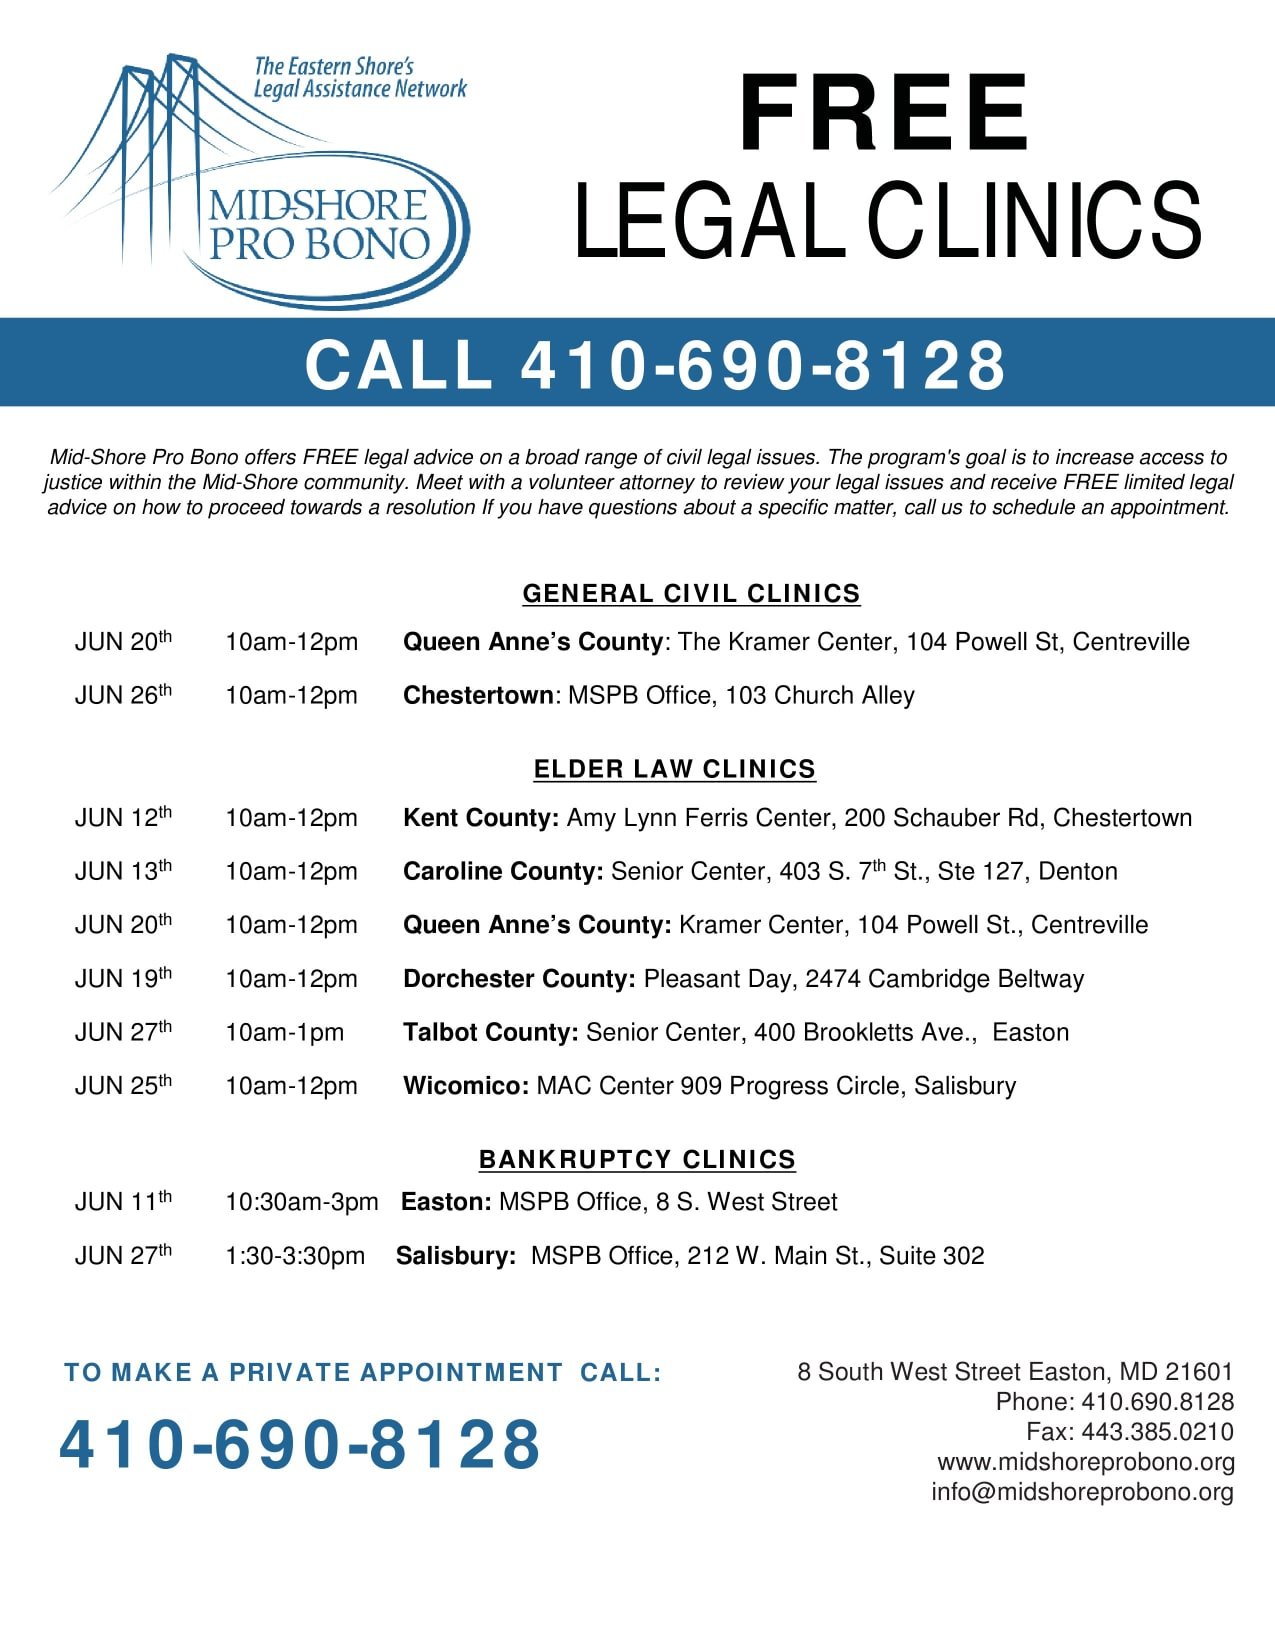 MSPB_Flyer-CLINIC-June-2019-new-page-0-w1275.jpg